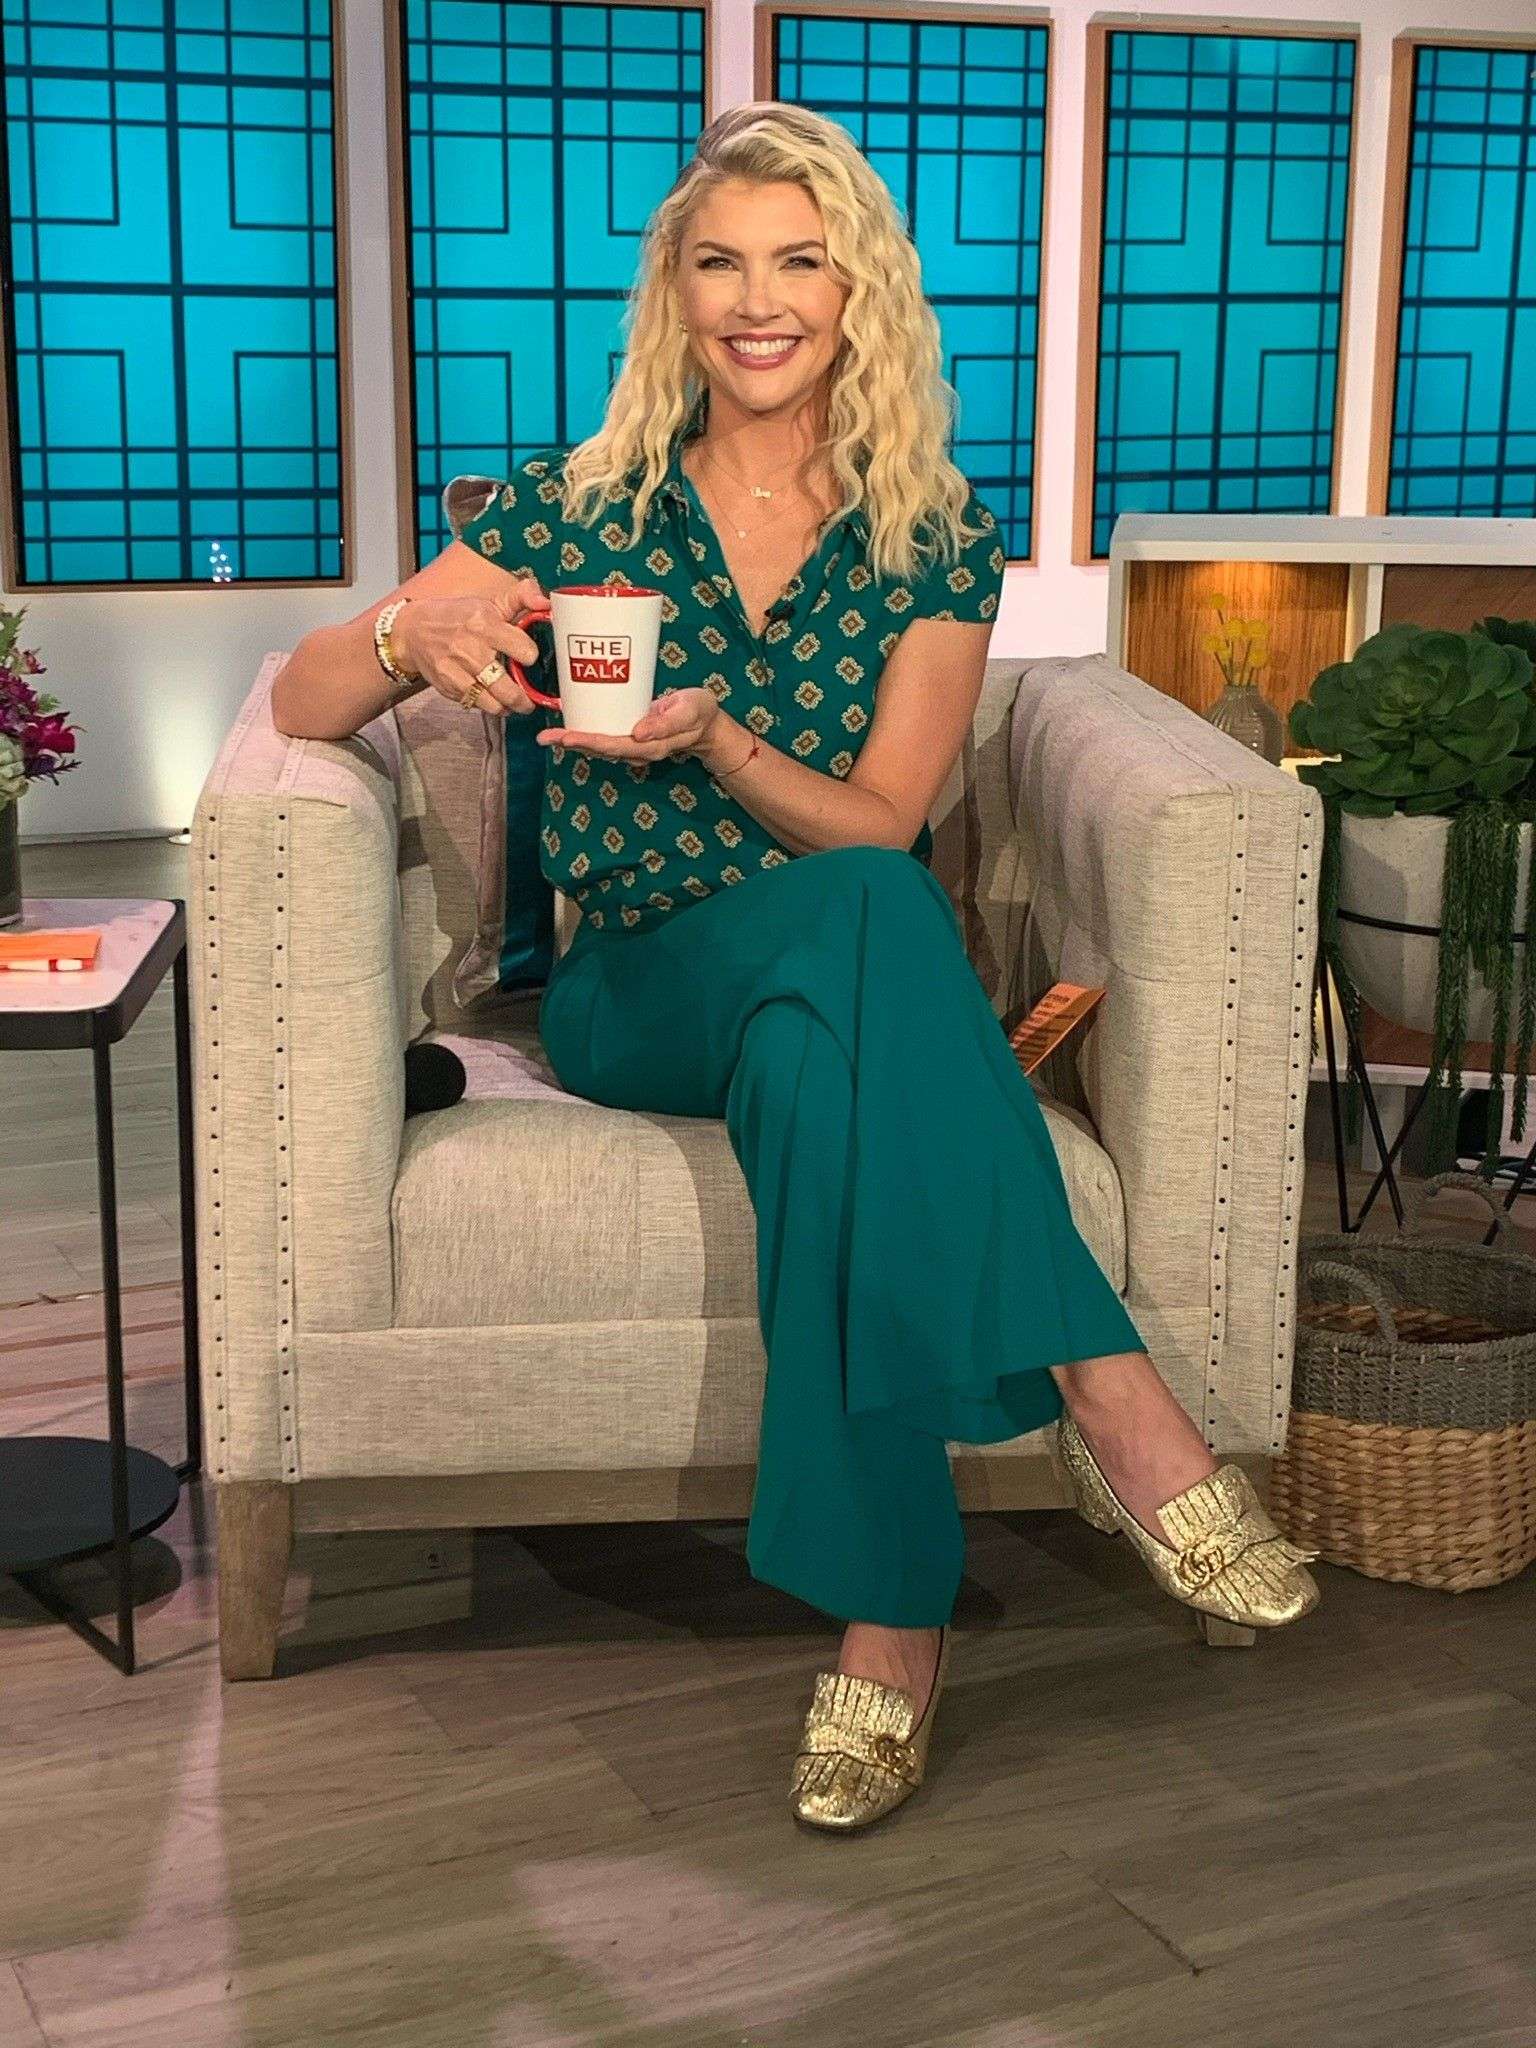 """Amanda Kloots was announced as a new host for season 11 of """"The Talk,"""" on Tuesday, December 1, 2020   Photo: Getty Images"""